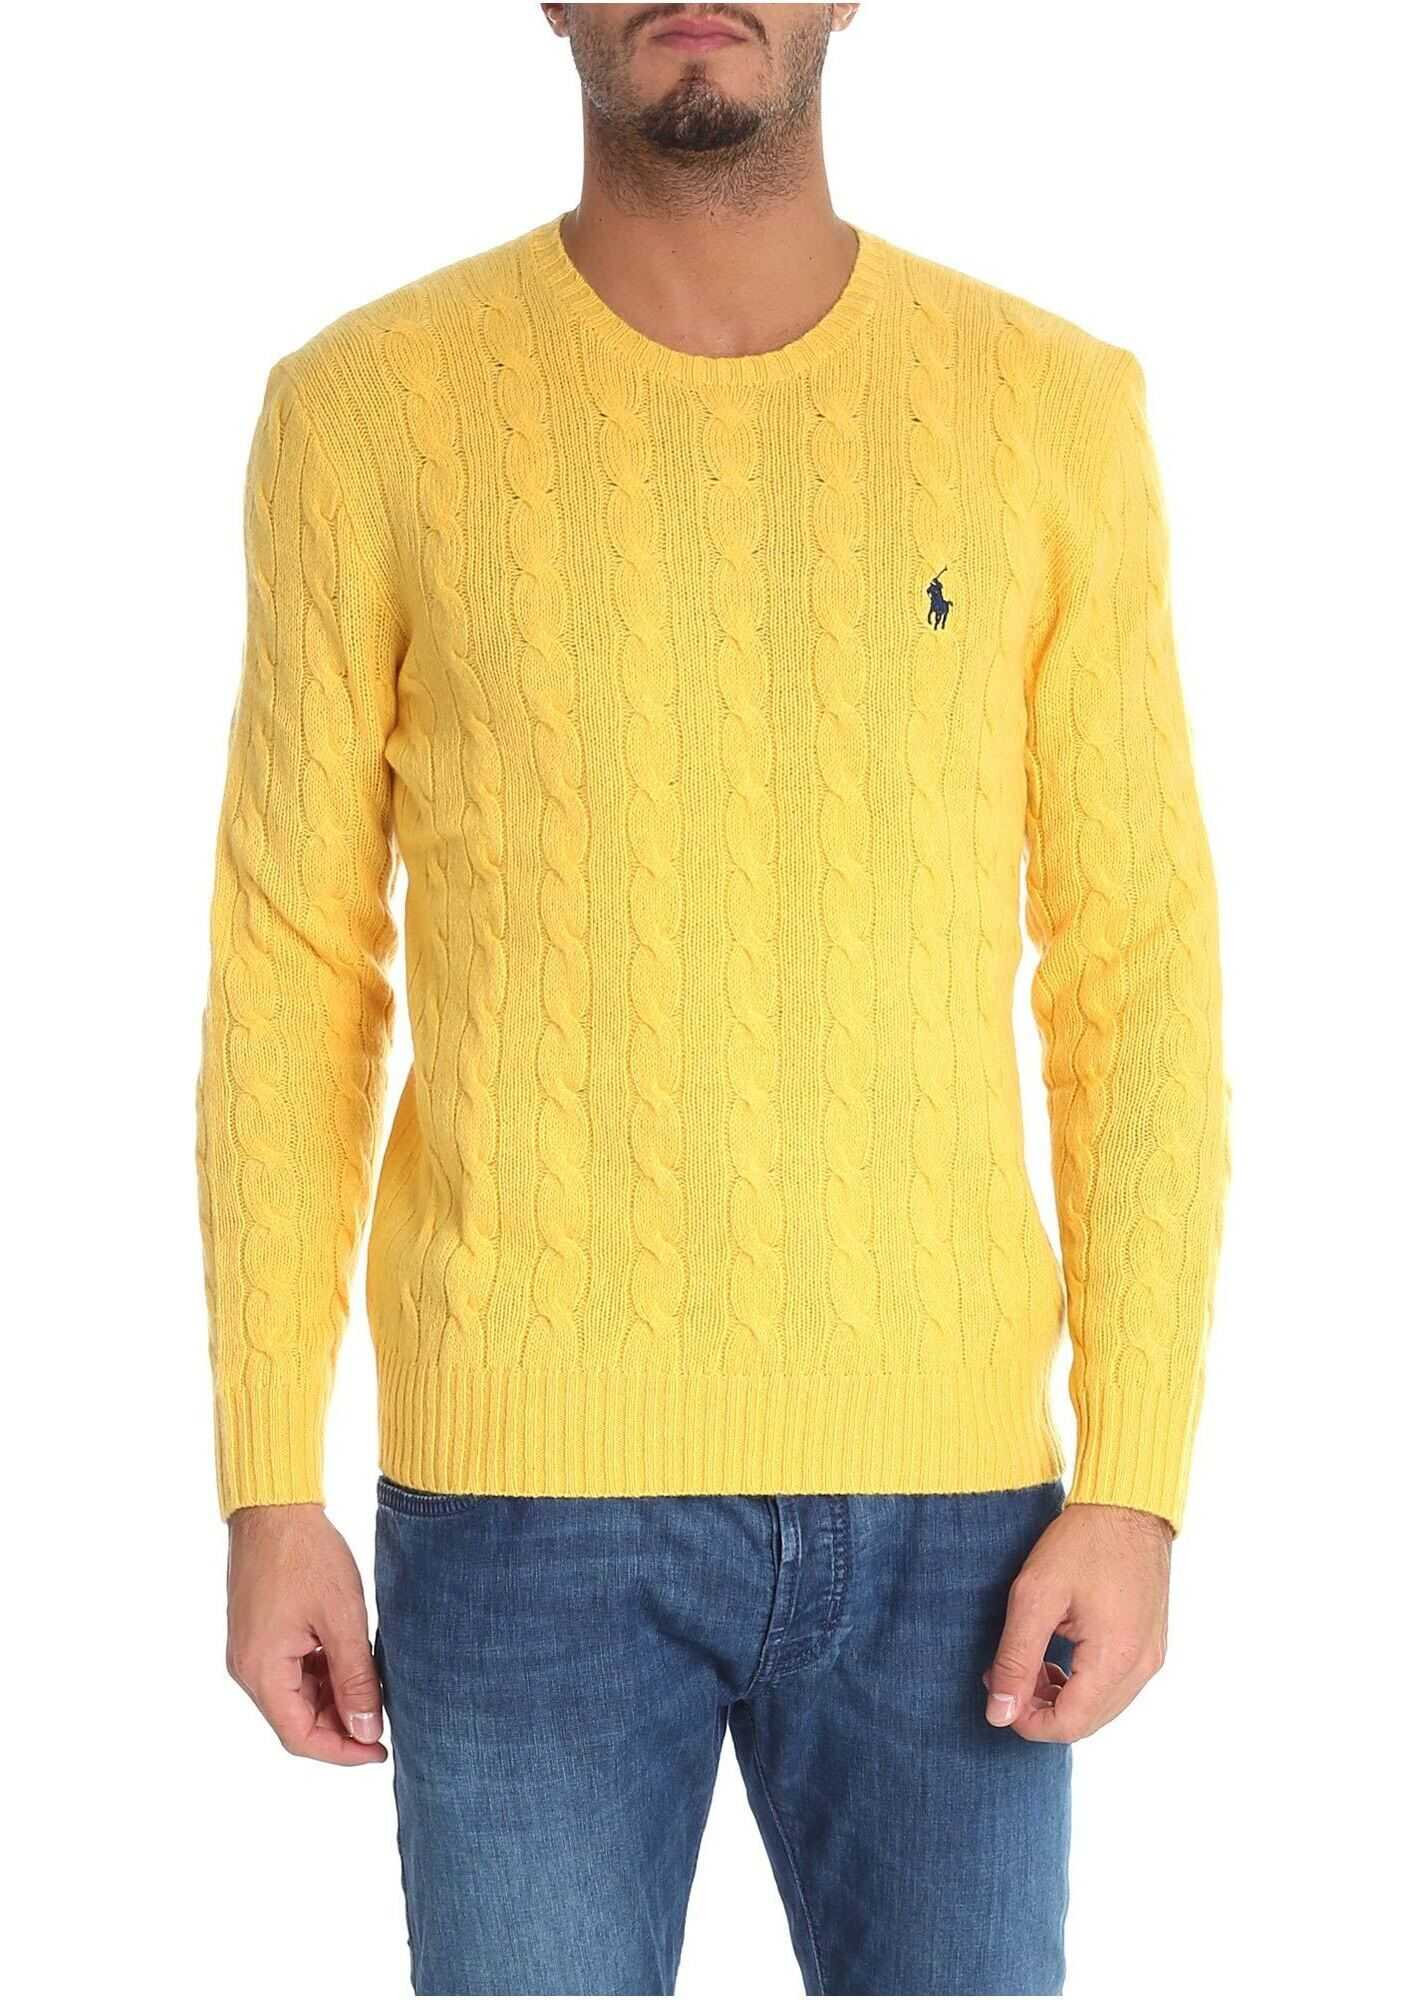 Ralph Lauren Yellow Cable Knitted Pullover* Yellow